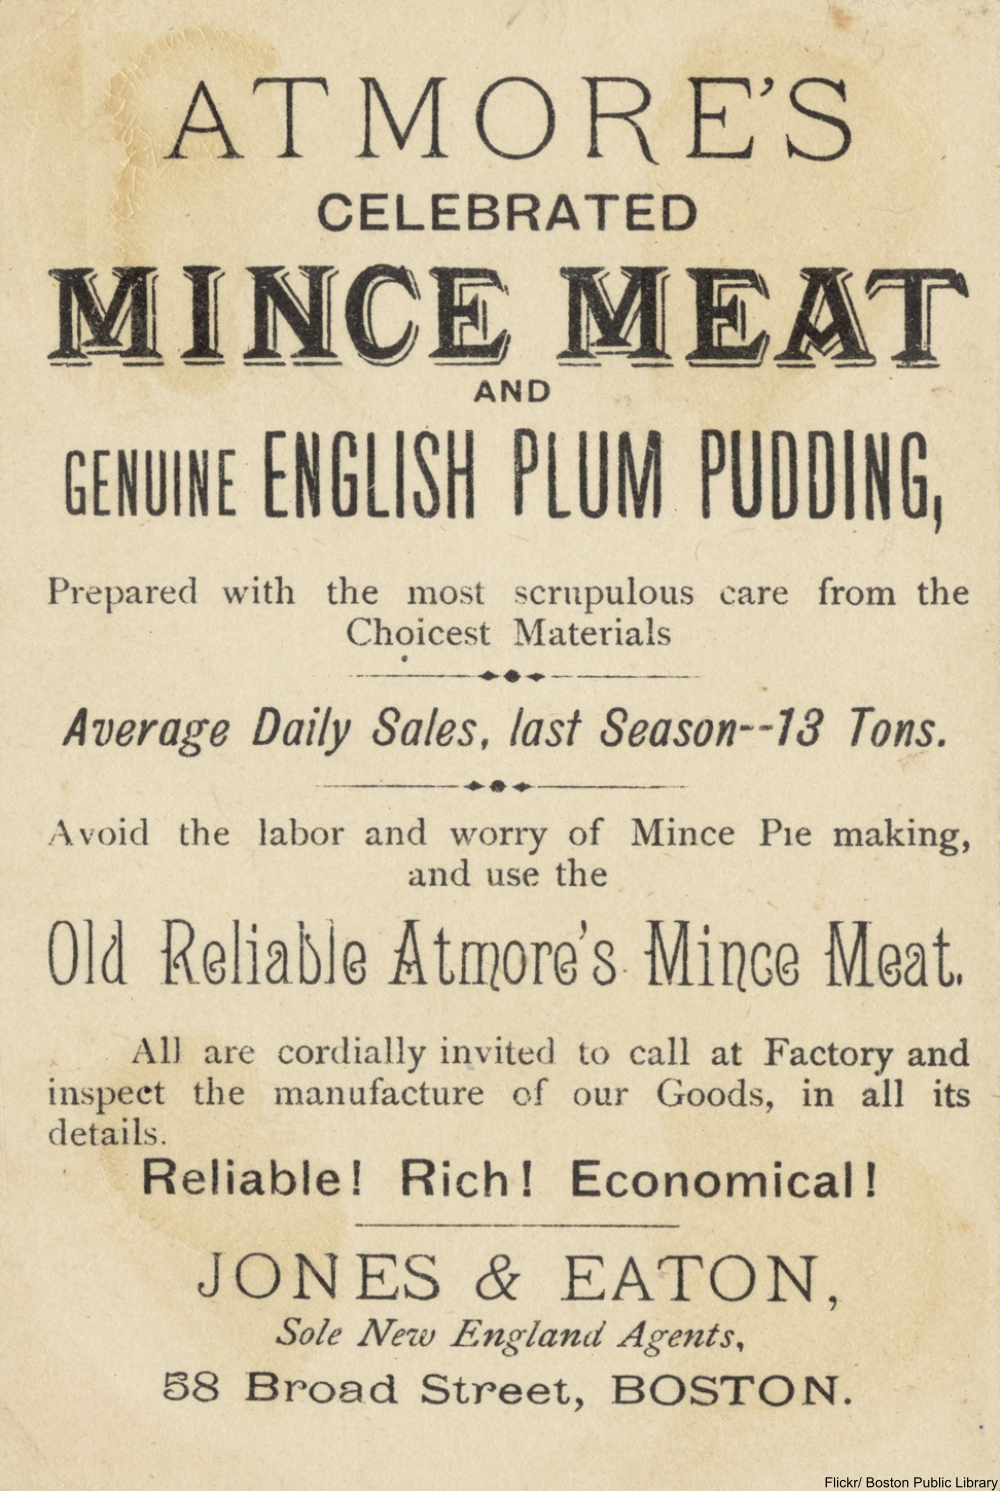 plum pudding and mincemeat advertisement from turn of the century Boston